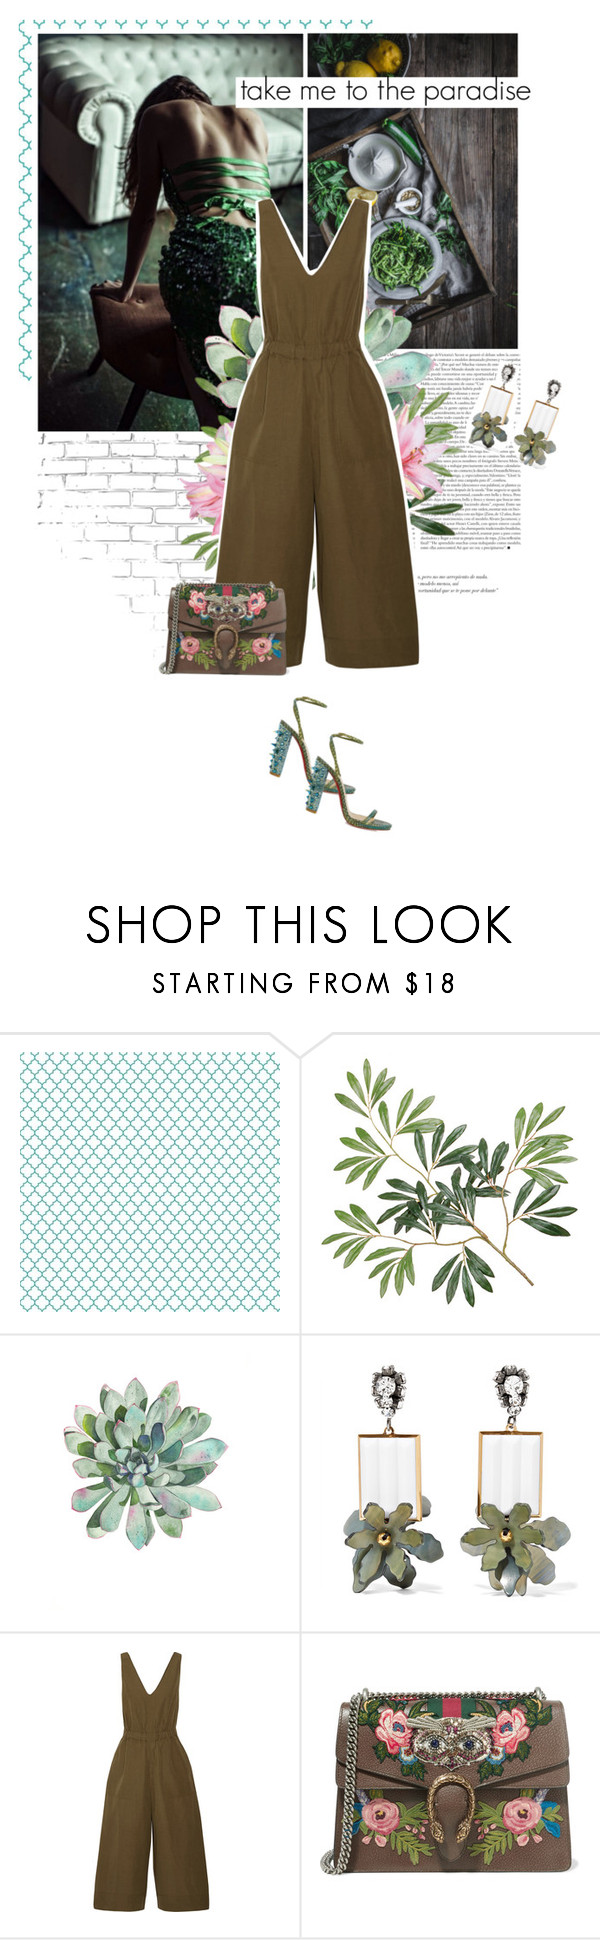 """""""take me to the paradise"""" by eve-angermayer ❤ liked on Polyvore featuring WALL, Marni, Ulla Johnson, Gucci, Christian Louboutin, Spring, GREEN, olive, eveangermayer and angermayerevelin"""